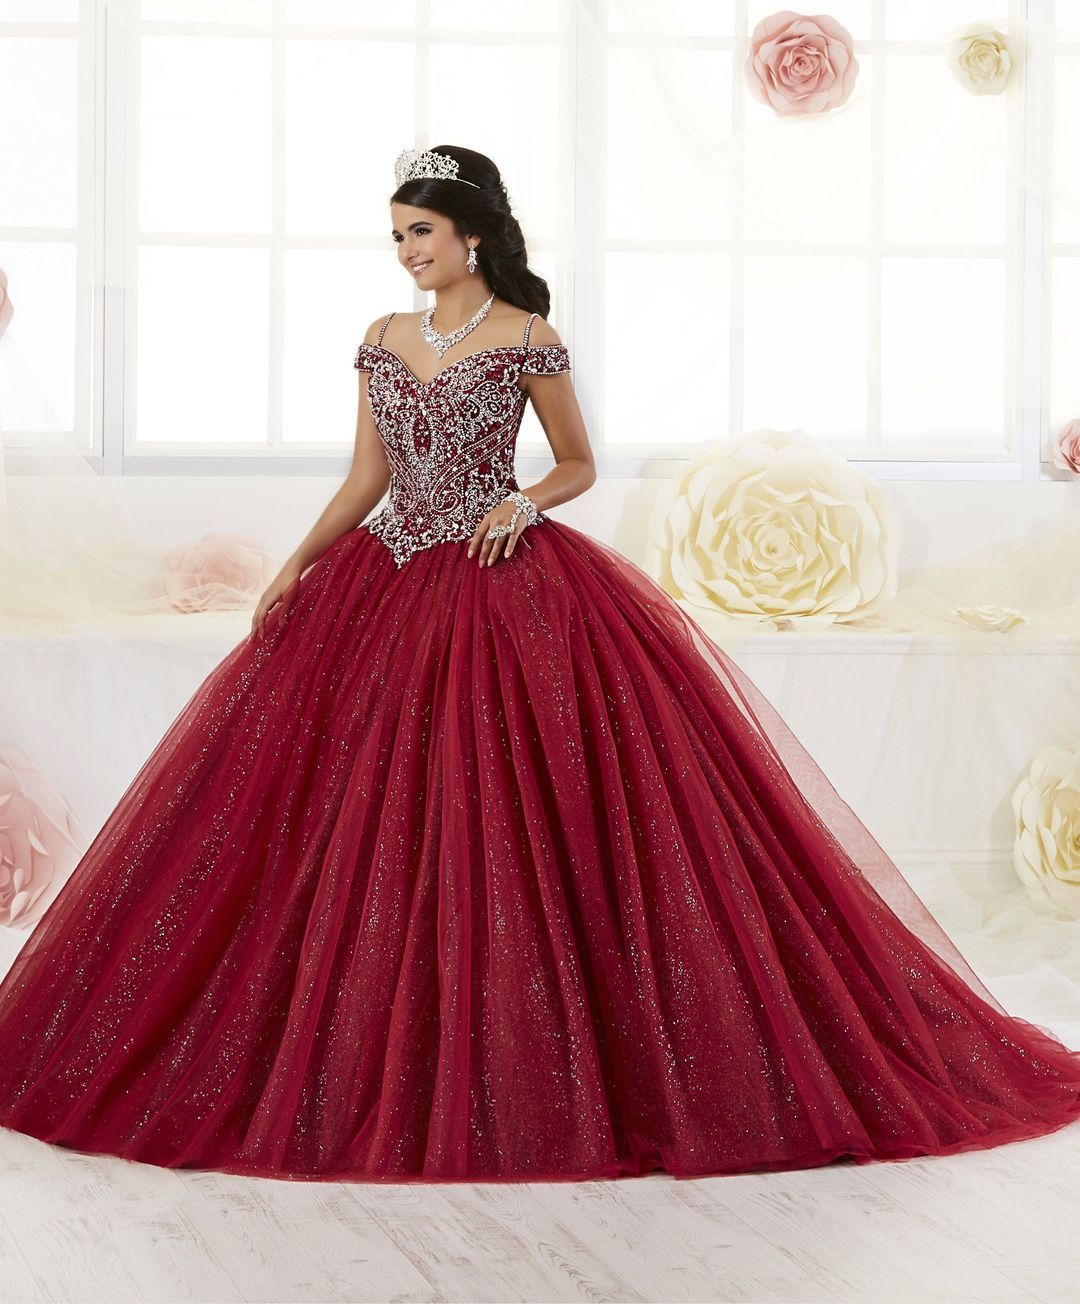 Beaded Off the Shoulder Quinceanera Dress by House of Wu 26899 -   15 dress Quinceanera burgundy ideas